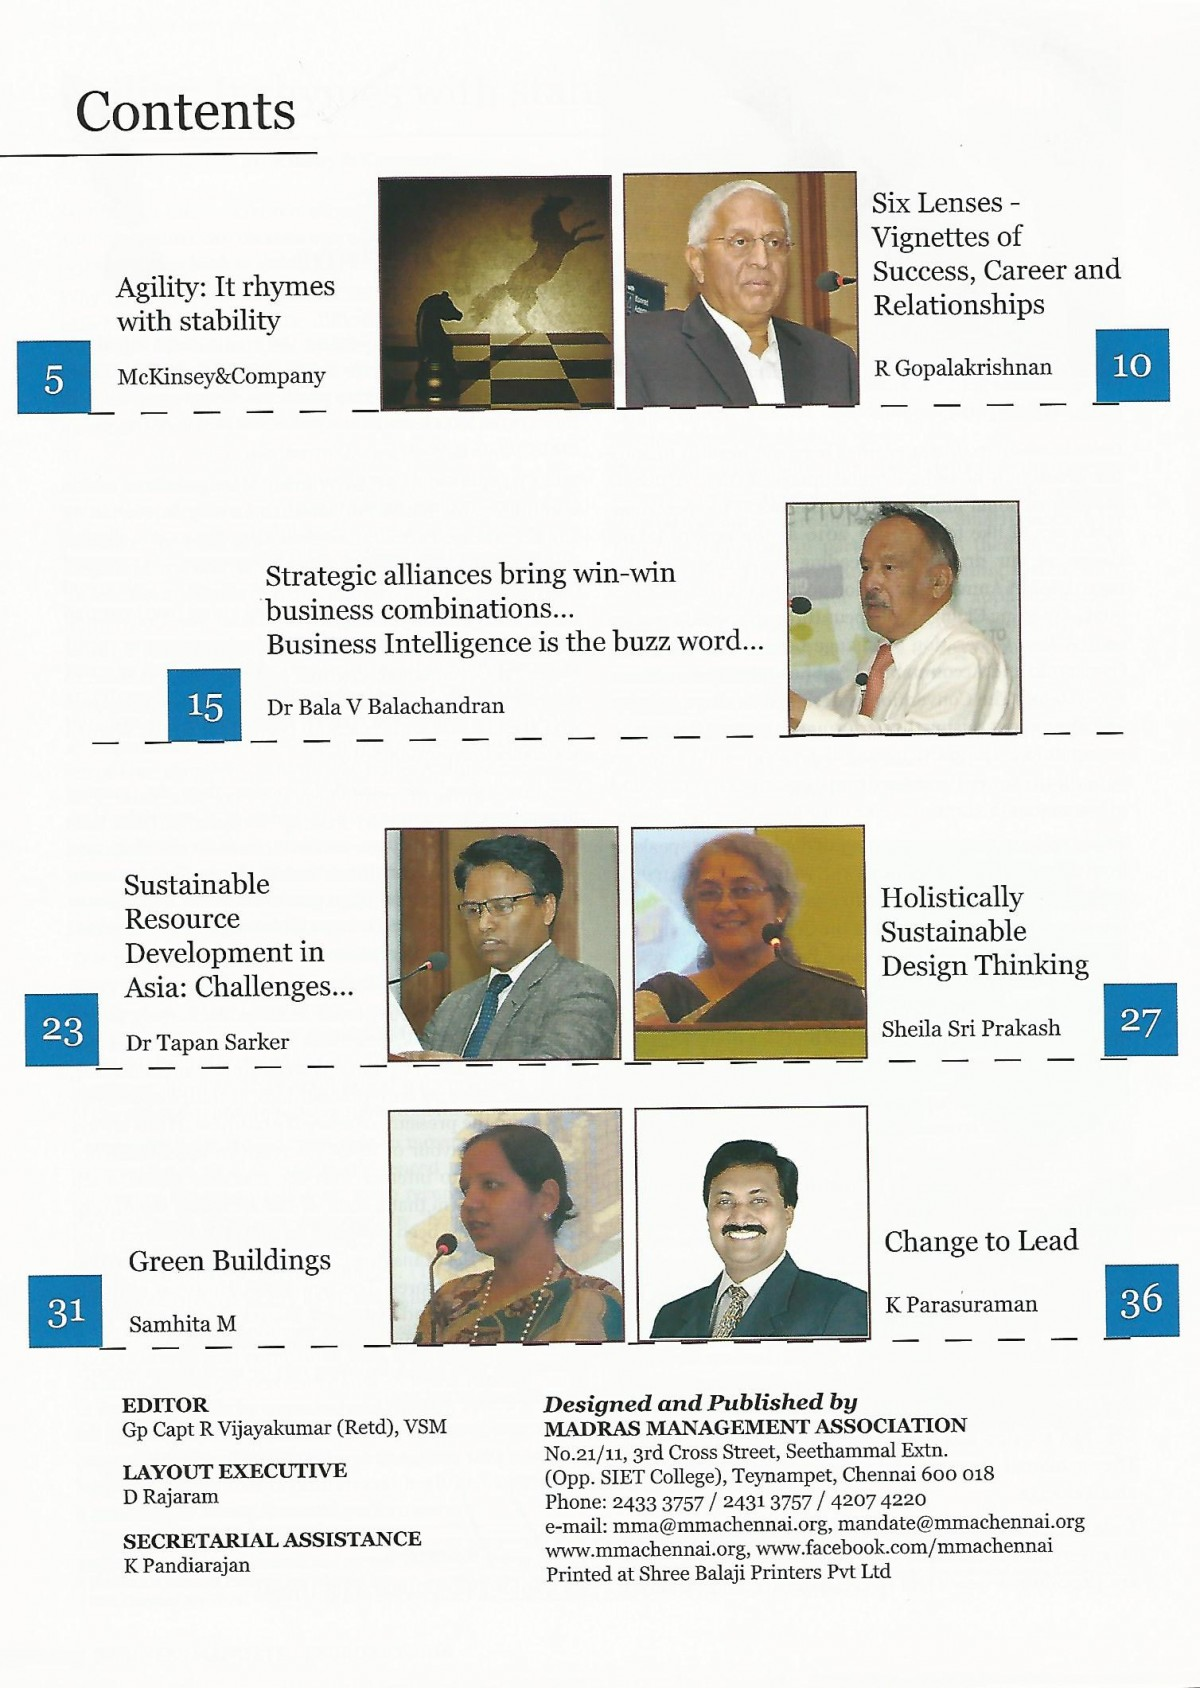 MMA Business Mandate Sheila Sri Prakash Holistically Sustainable Design Thinking Article